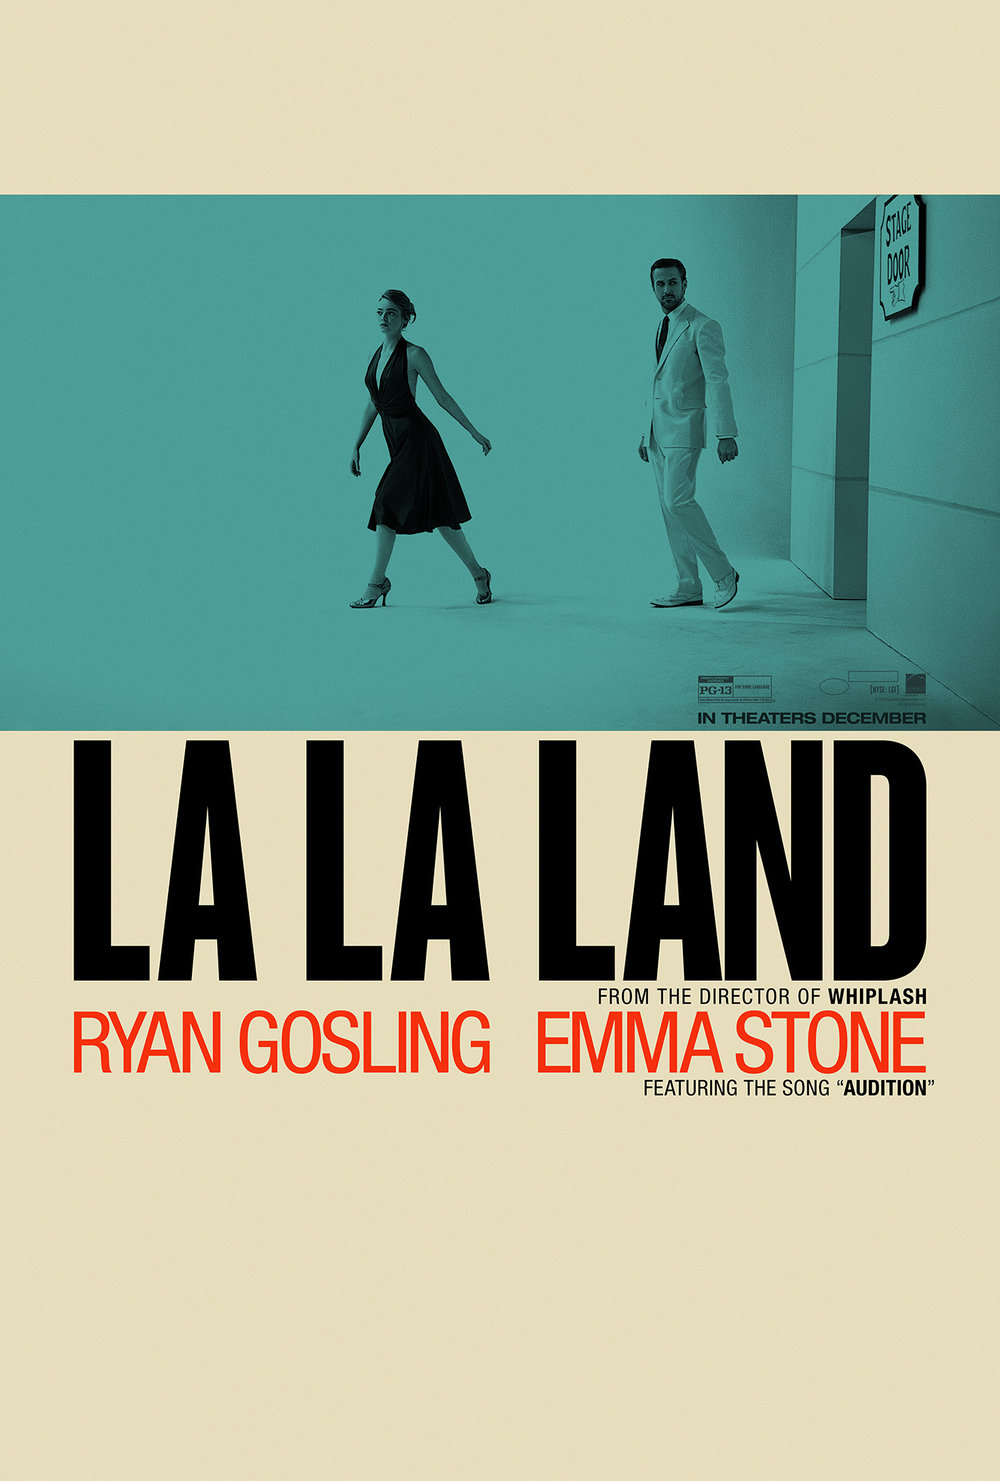 LaLaLand_1Sht_Audition_Trim_100dpi.jpg